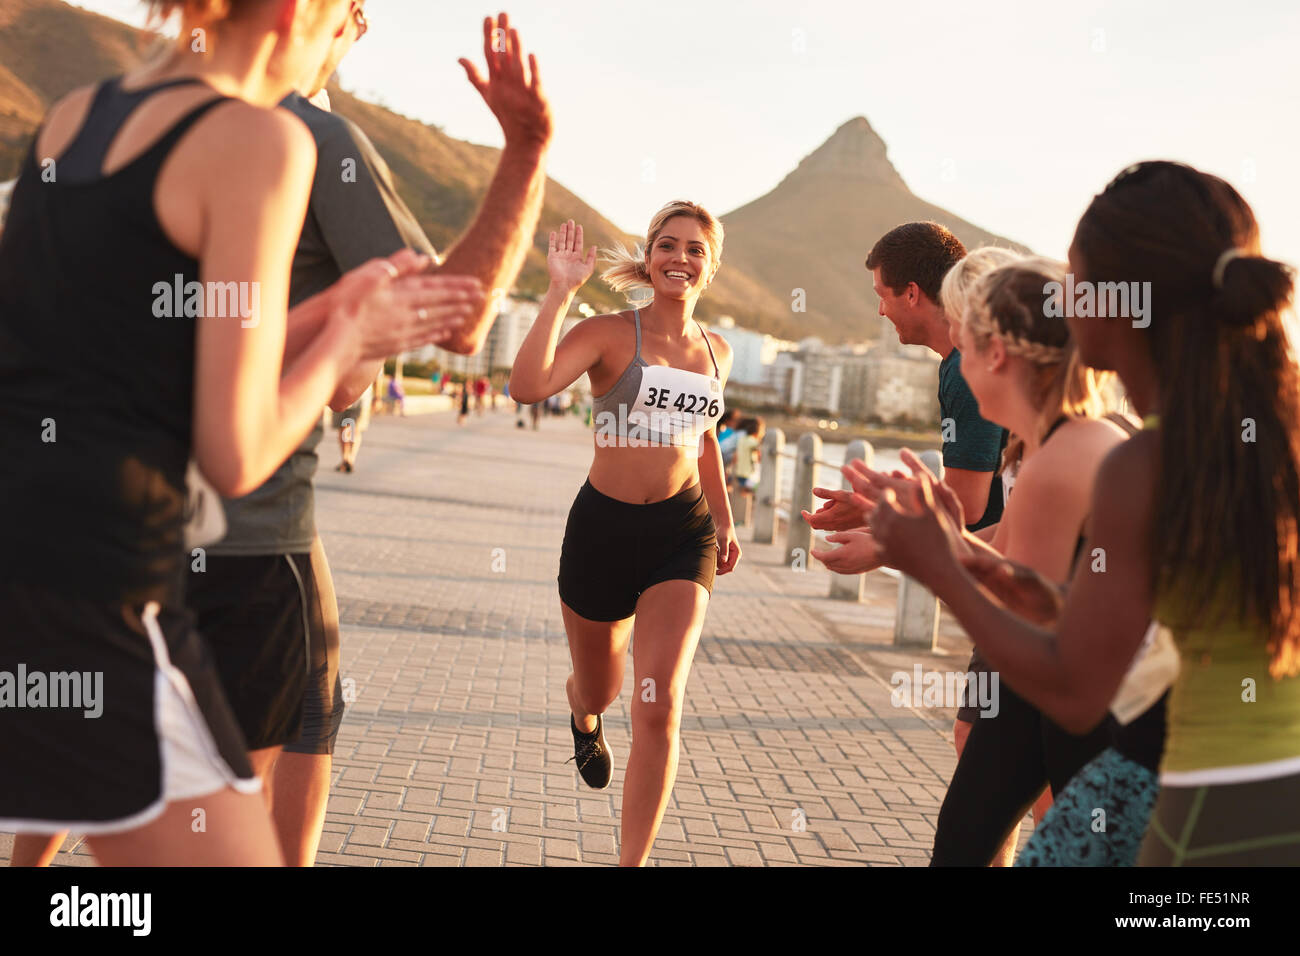 Group of spectators cheering runners just before the finish line. Female runner finishing the race with her team - Stock Image